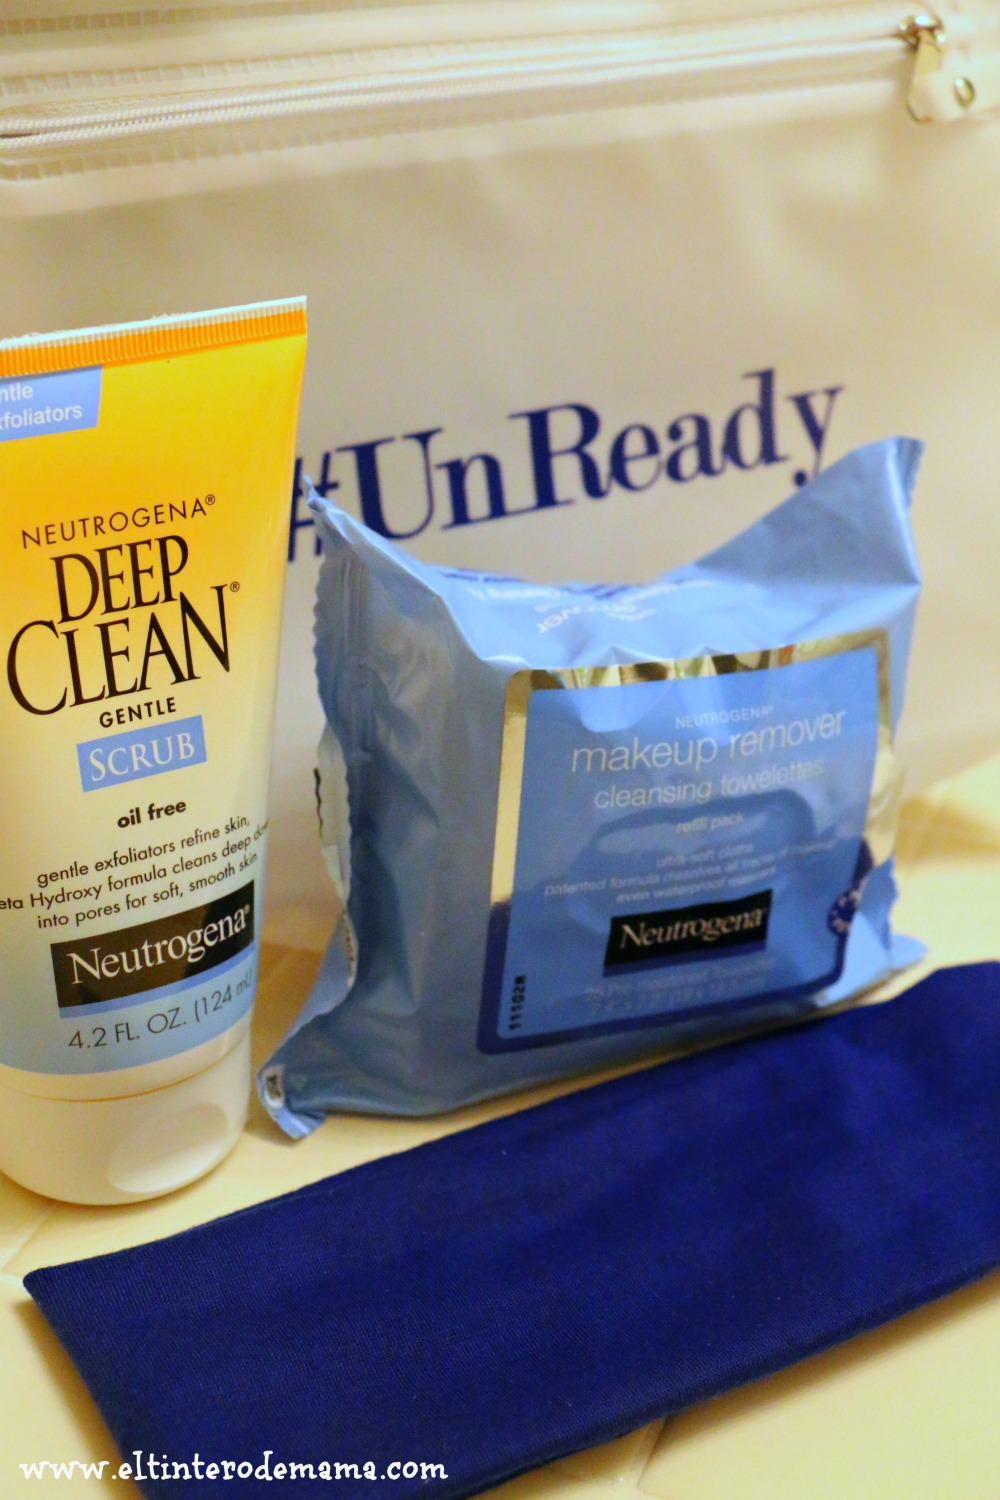 Neutrogena_unready_sorteo